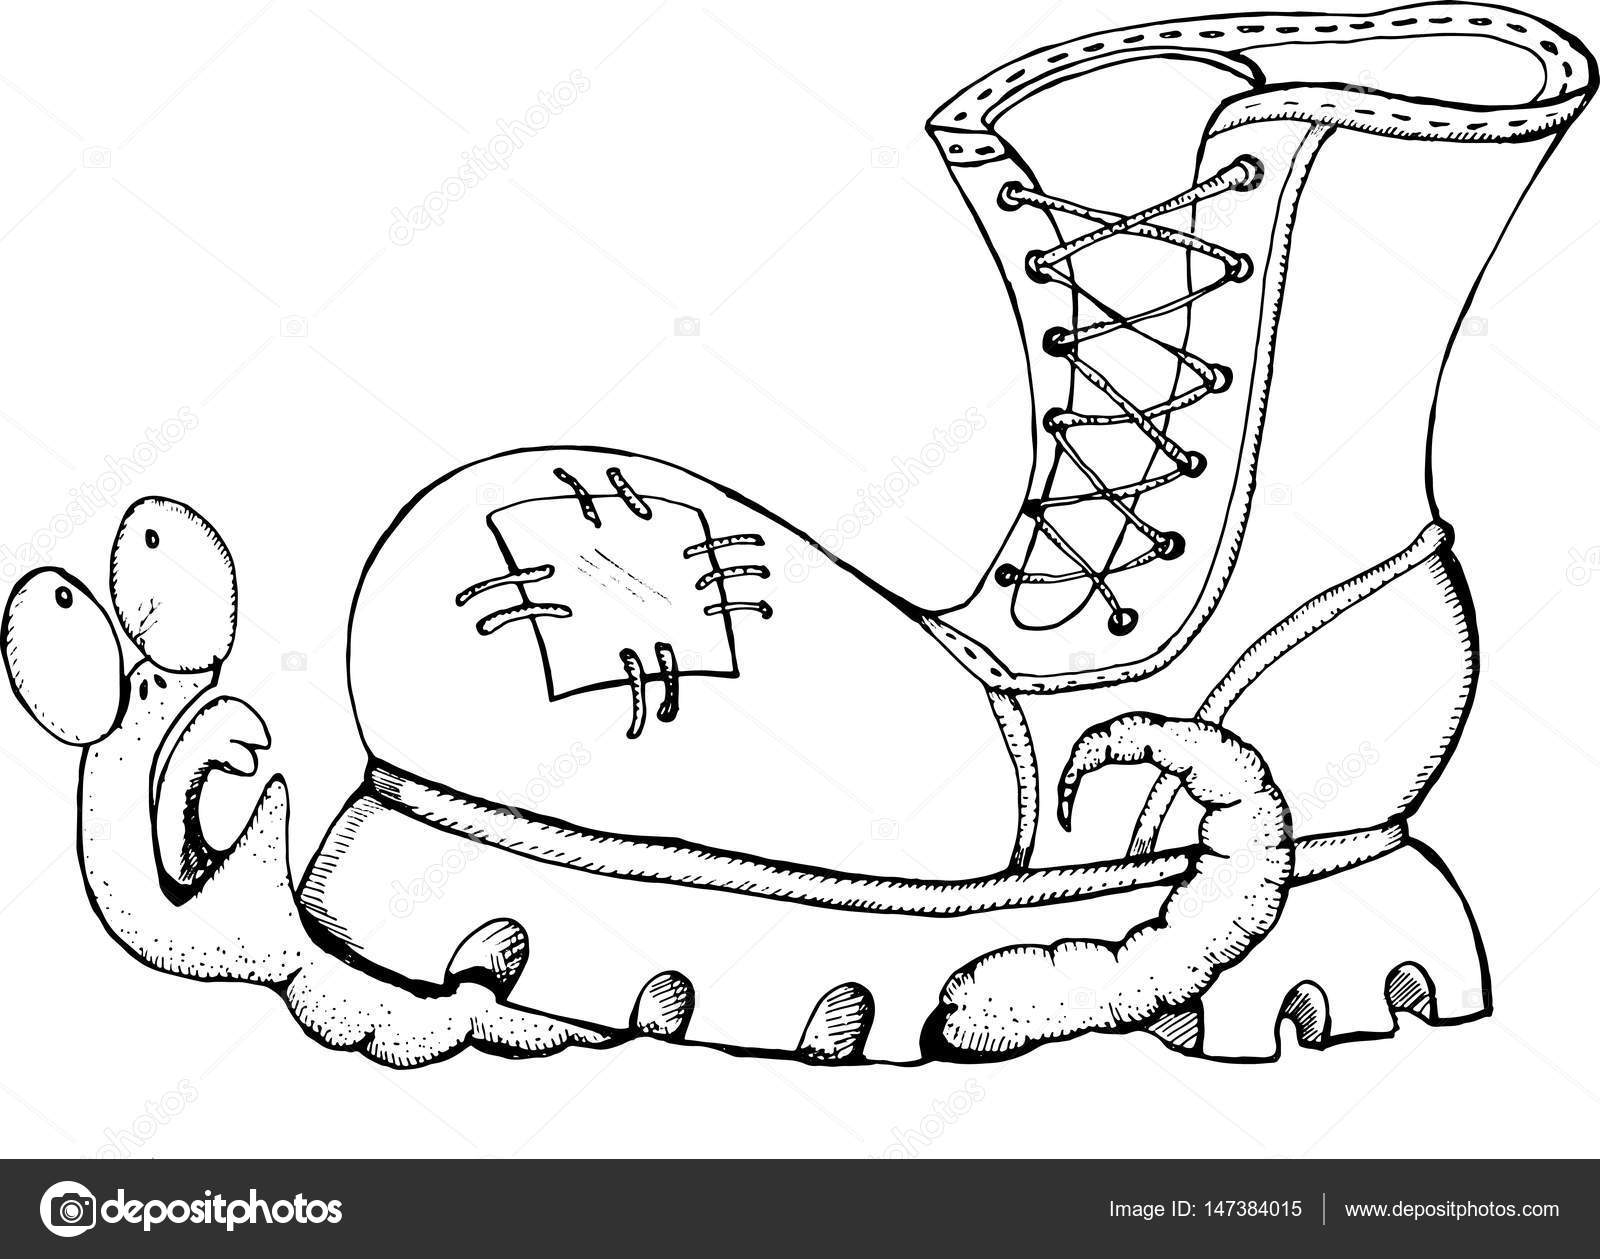 1600x1259 A Worm Crushed By A Shoe. Vector Stock Vector Bobcat 2004@mail